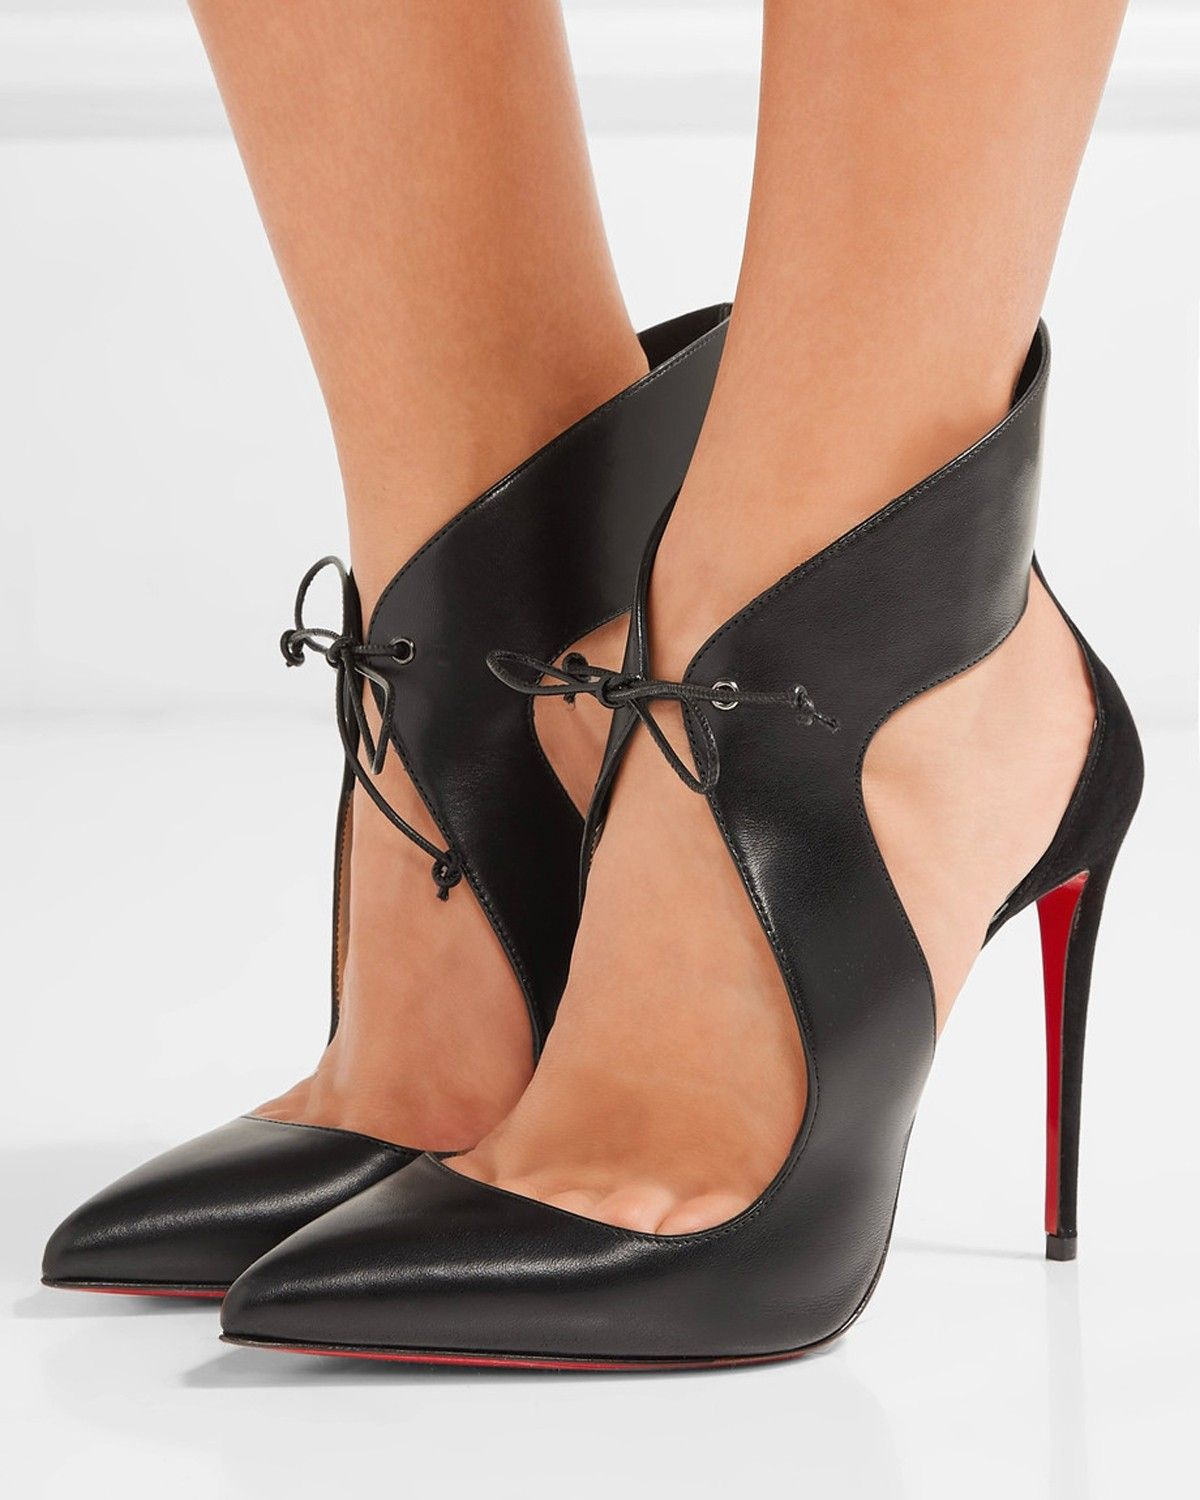 245cdb19e929 CHRISTIAN LOUBOUTIN Ferme Rouge cutout leather and suede pumps